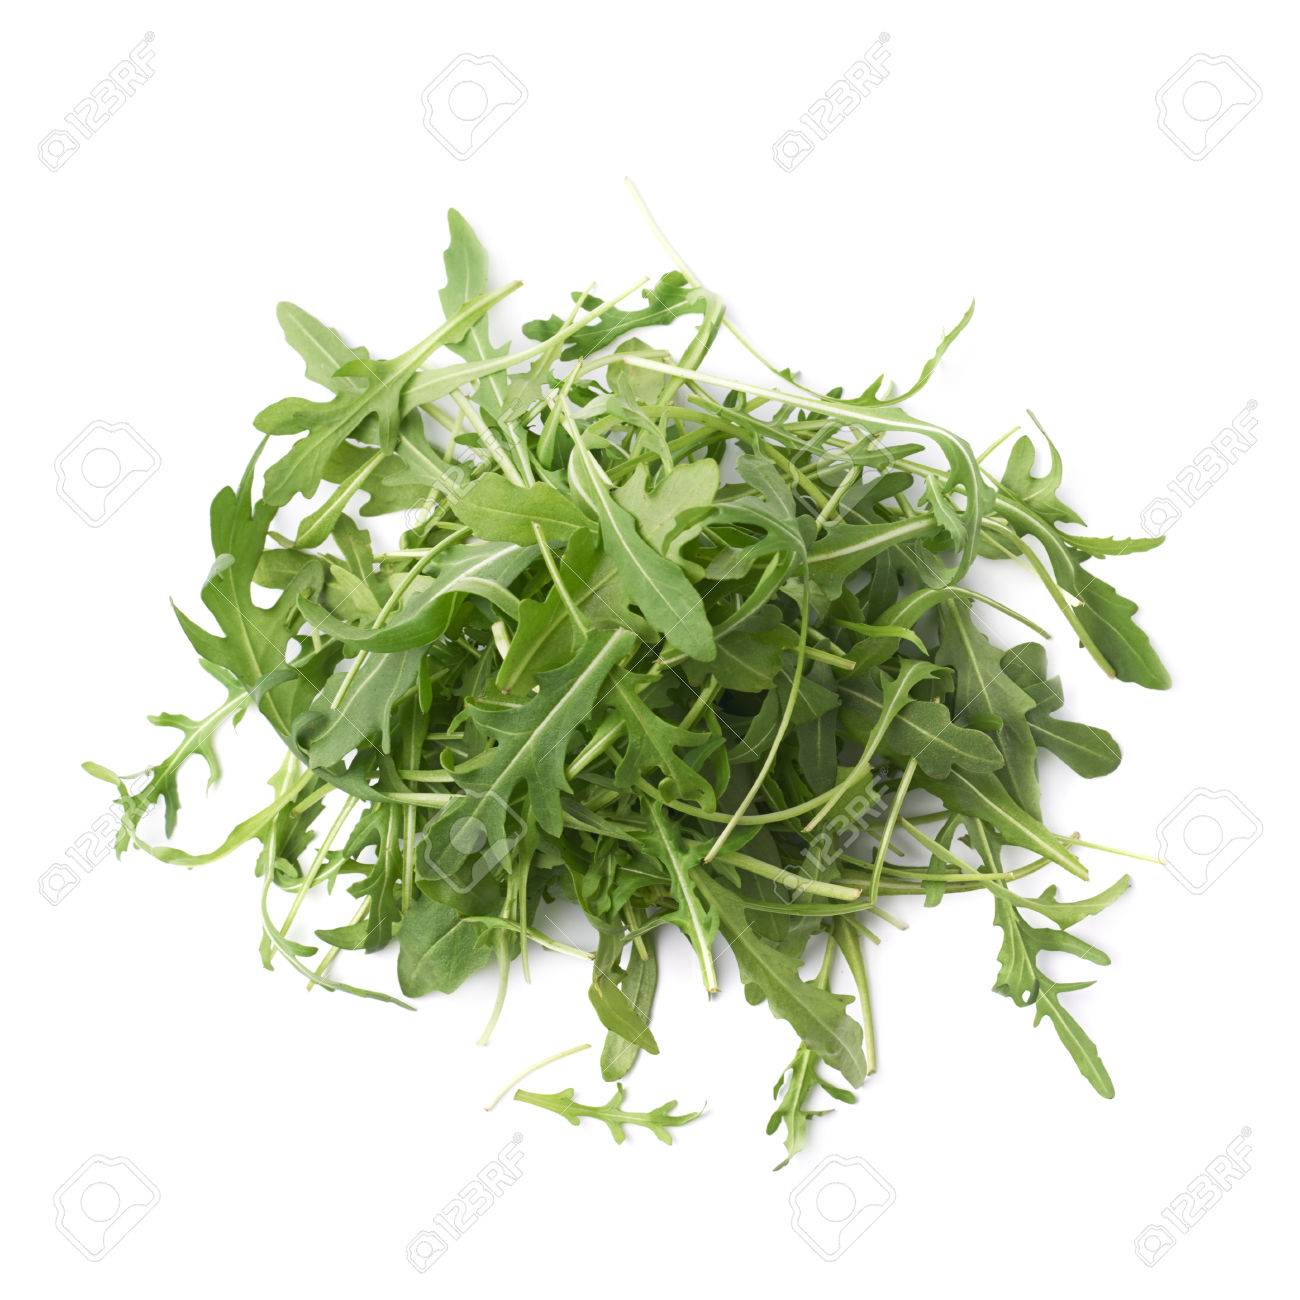 Pile Of Eruca Sativa Rucola Arugula Fresh Green Rocket Salad Leaves Composition Isolated Over The